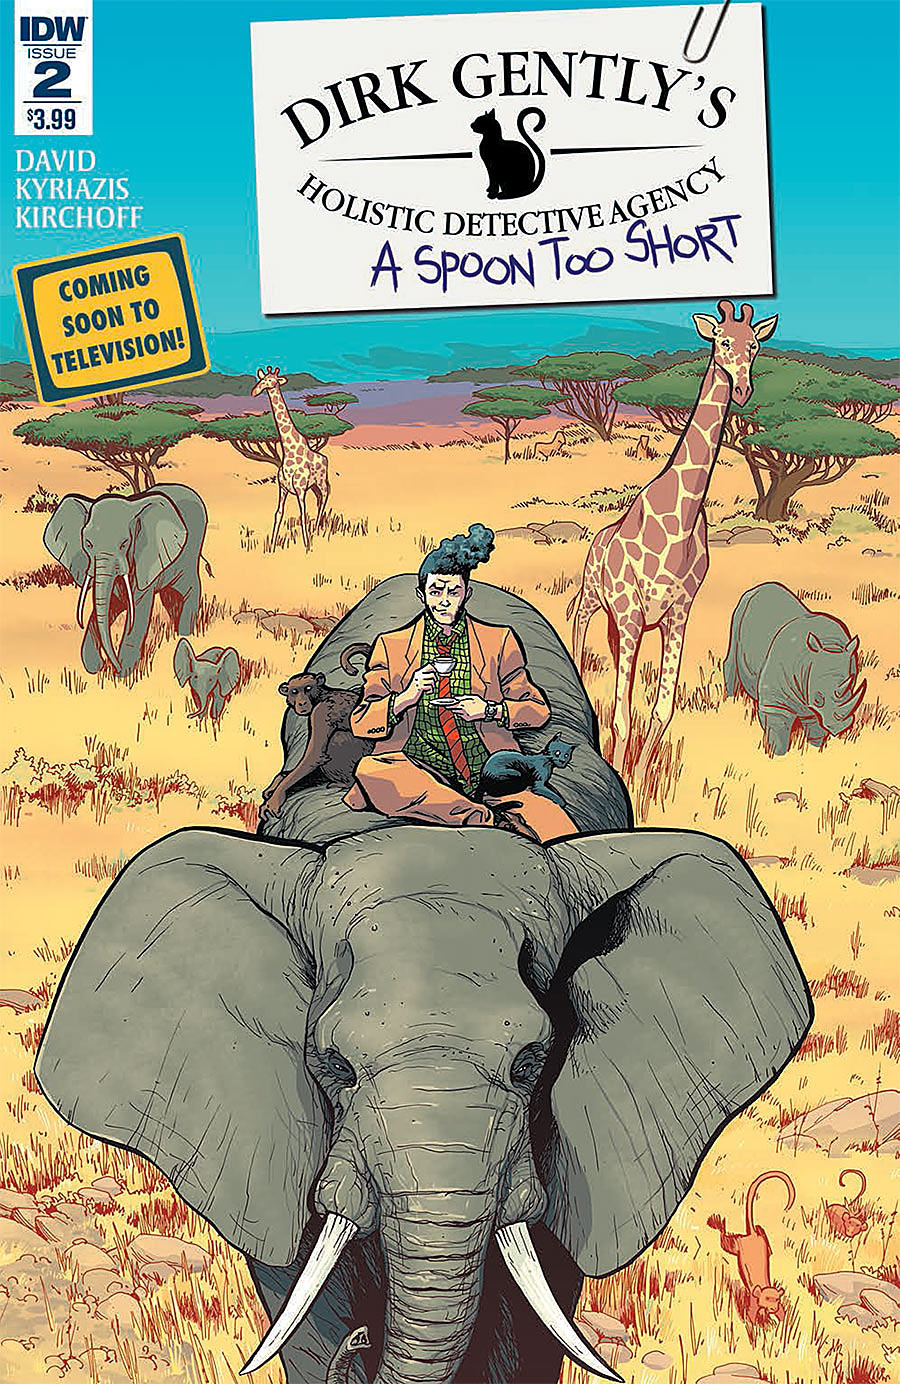 Dirk Gently's Holistic Detective Agency: A Spoon Too Short #2